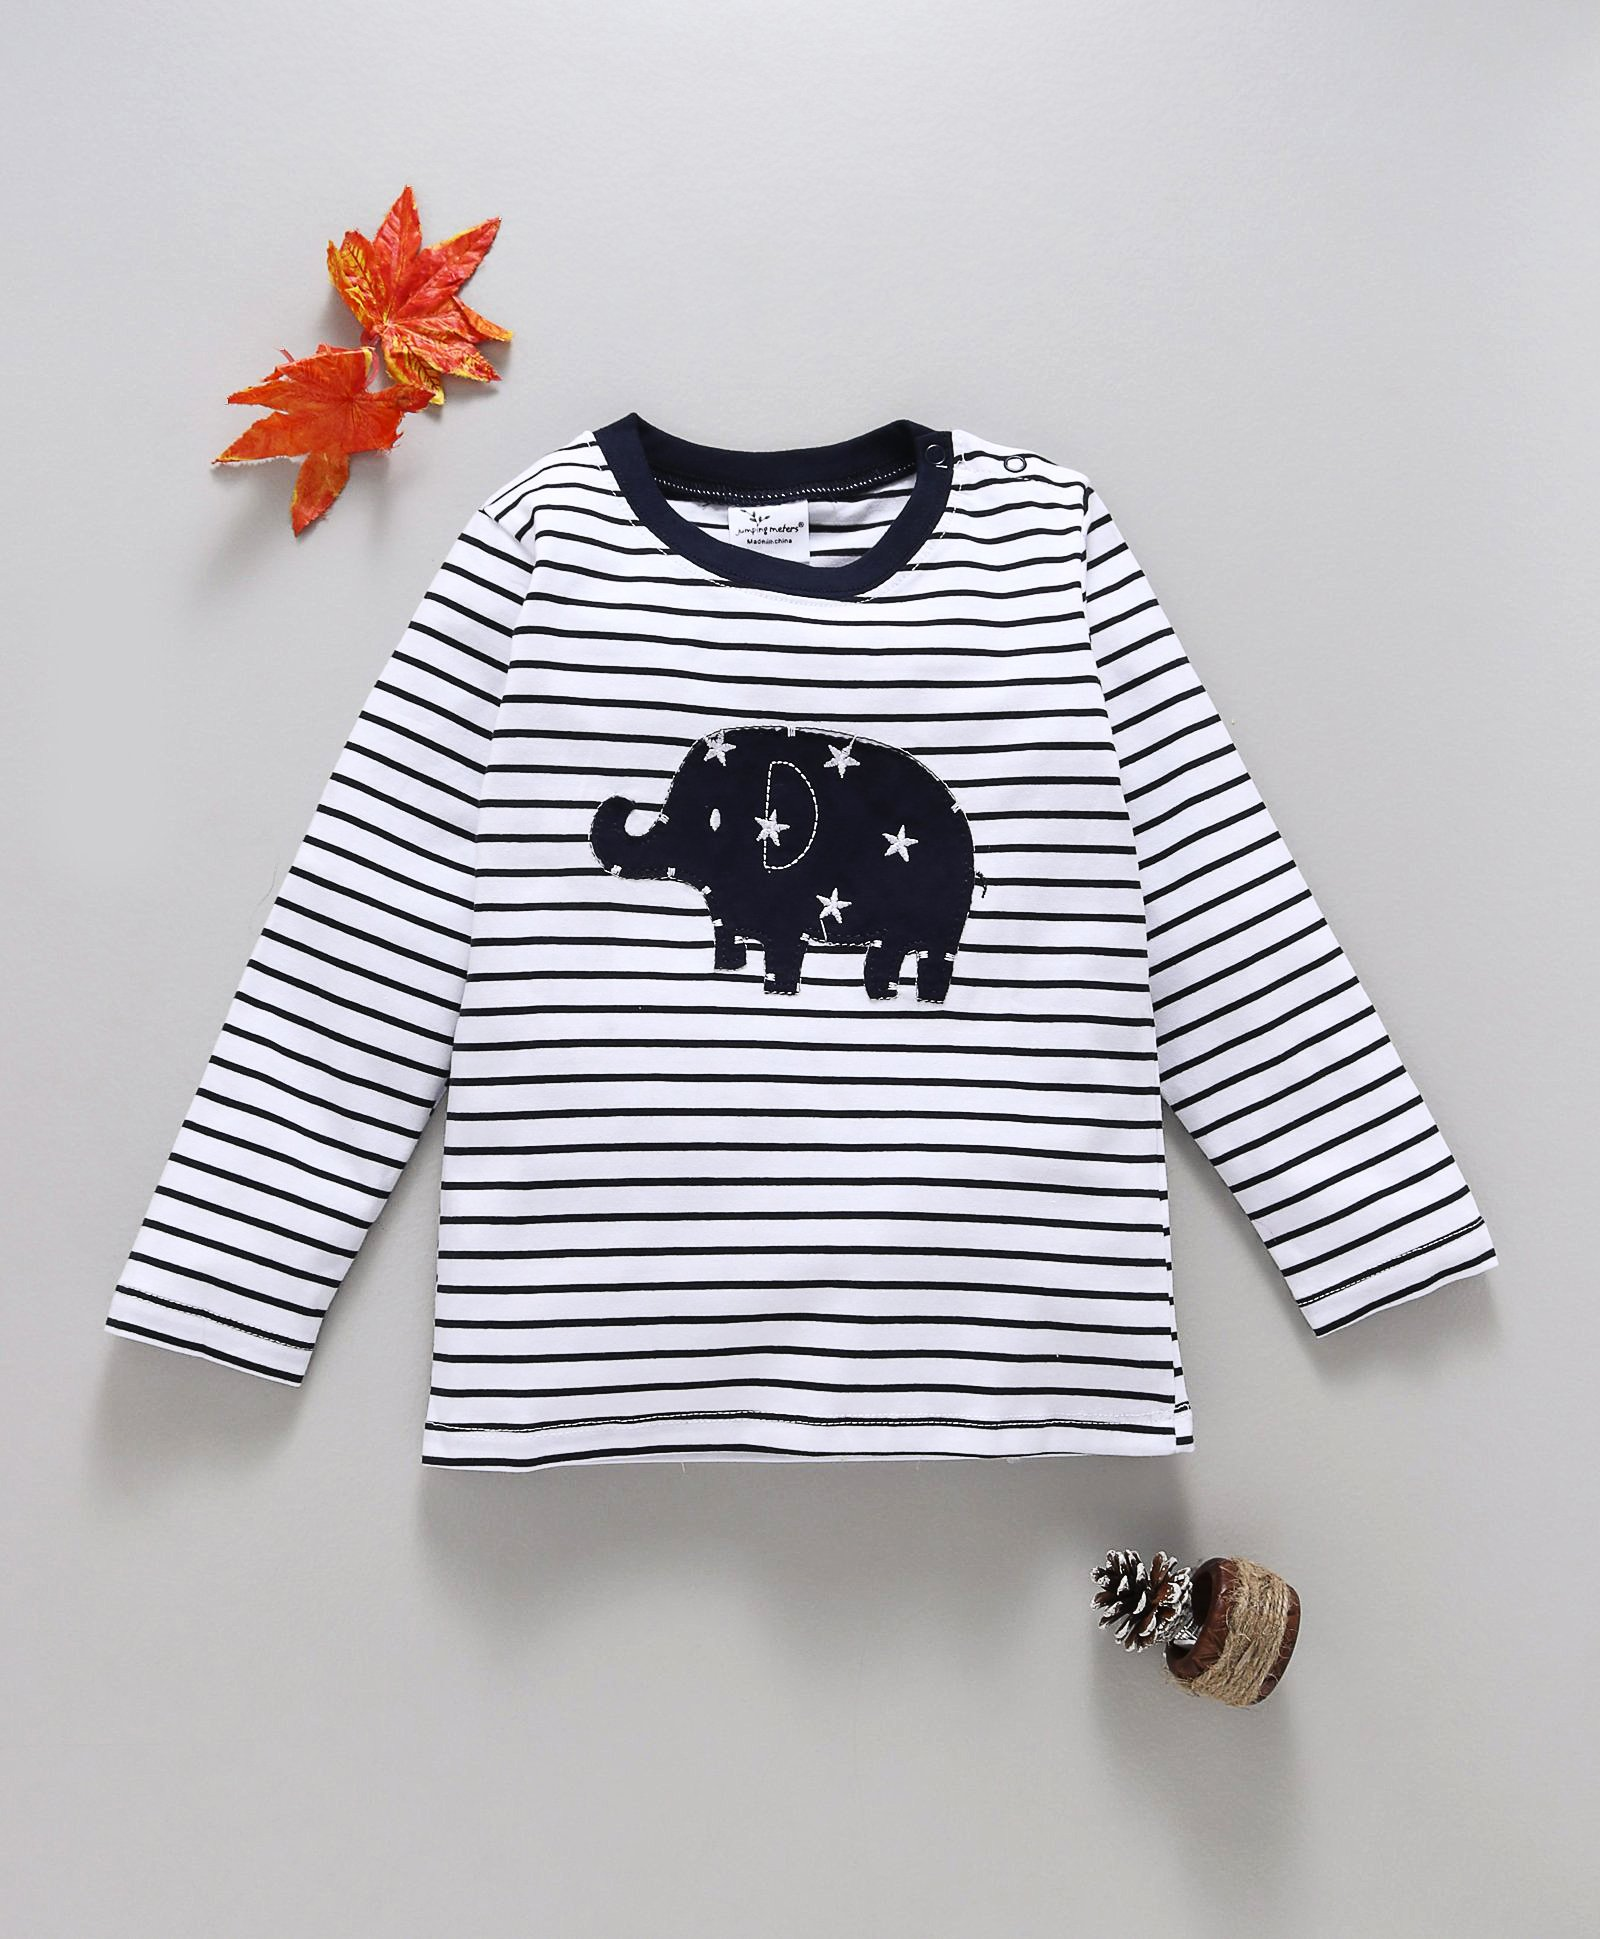 d56a1c0118e9 Buy Kookie Kids Striped Full Sleeves Tee With Elephant Patch White ...